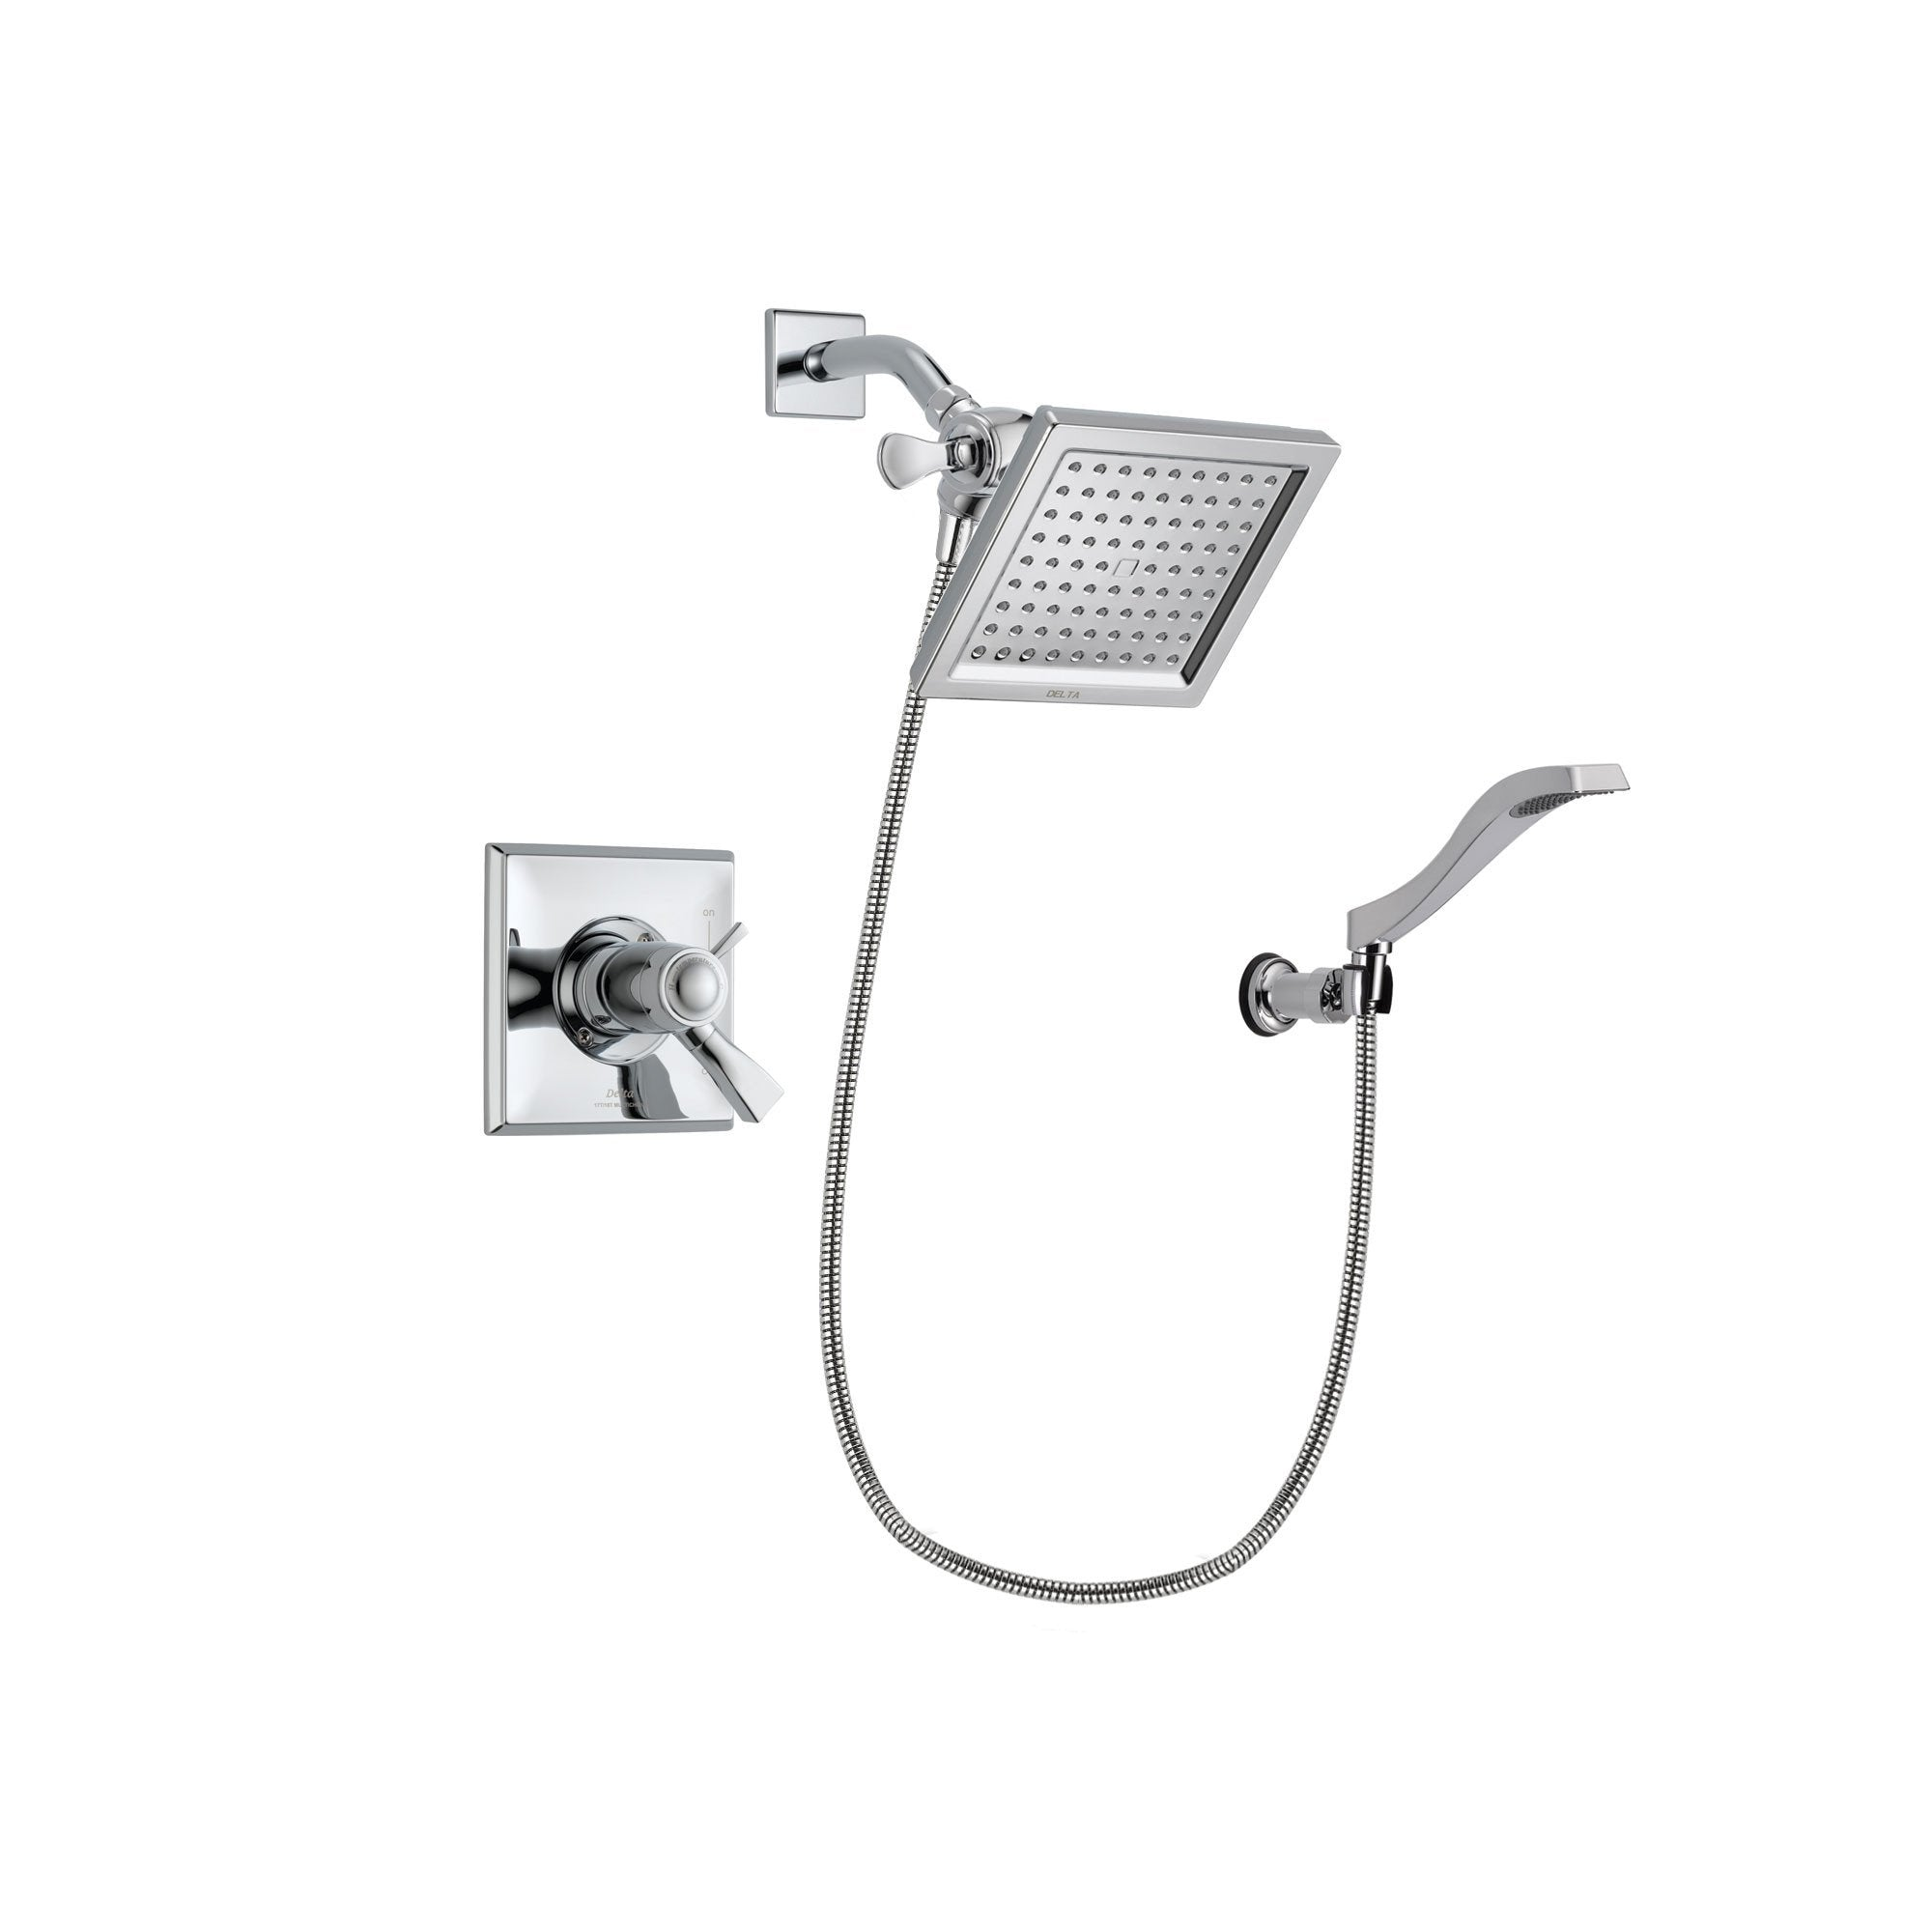 Delta Dryden Chrome Shower Faucet System w/ Shower Head and Hand Shower DSP0017V